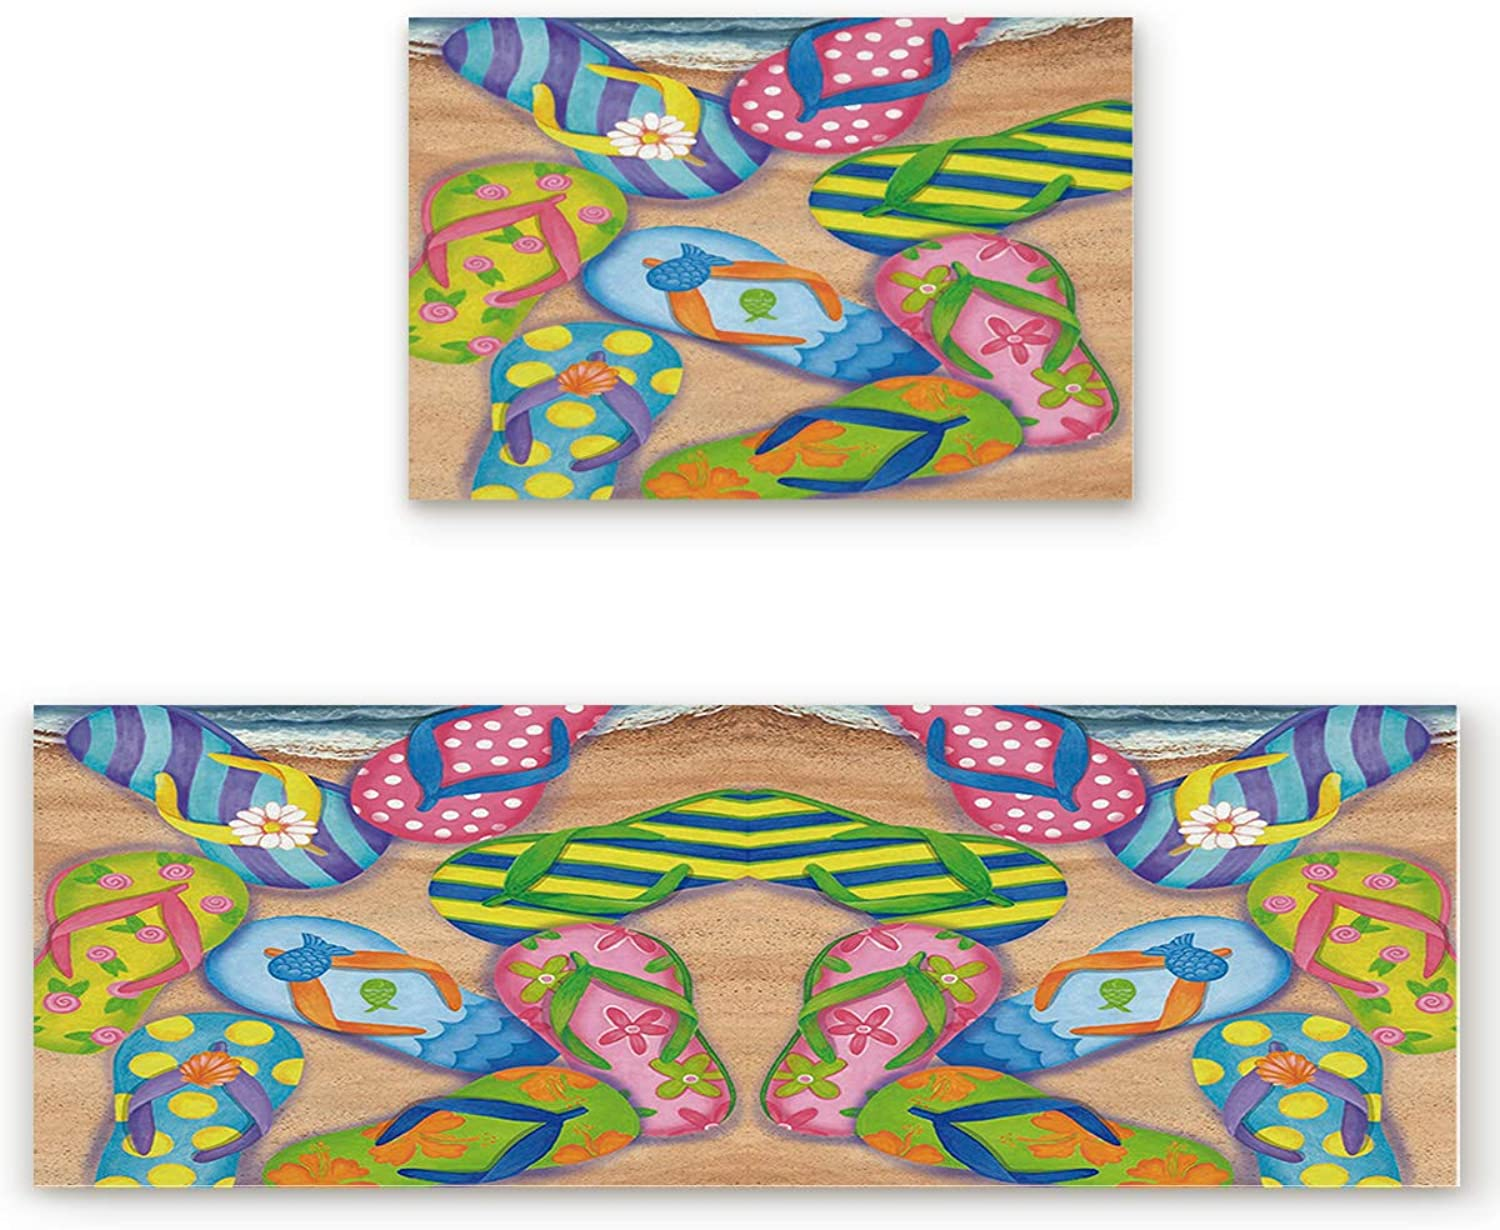 2 Piece Non-Slip Kitchen Bathroom Entrance Mat Absorbent Durable Floor Doormat Runner Rug Set - colorful Beach Sandal Flip Flops Print